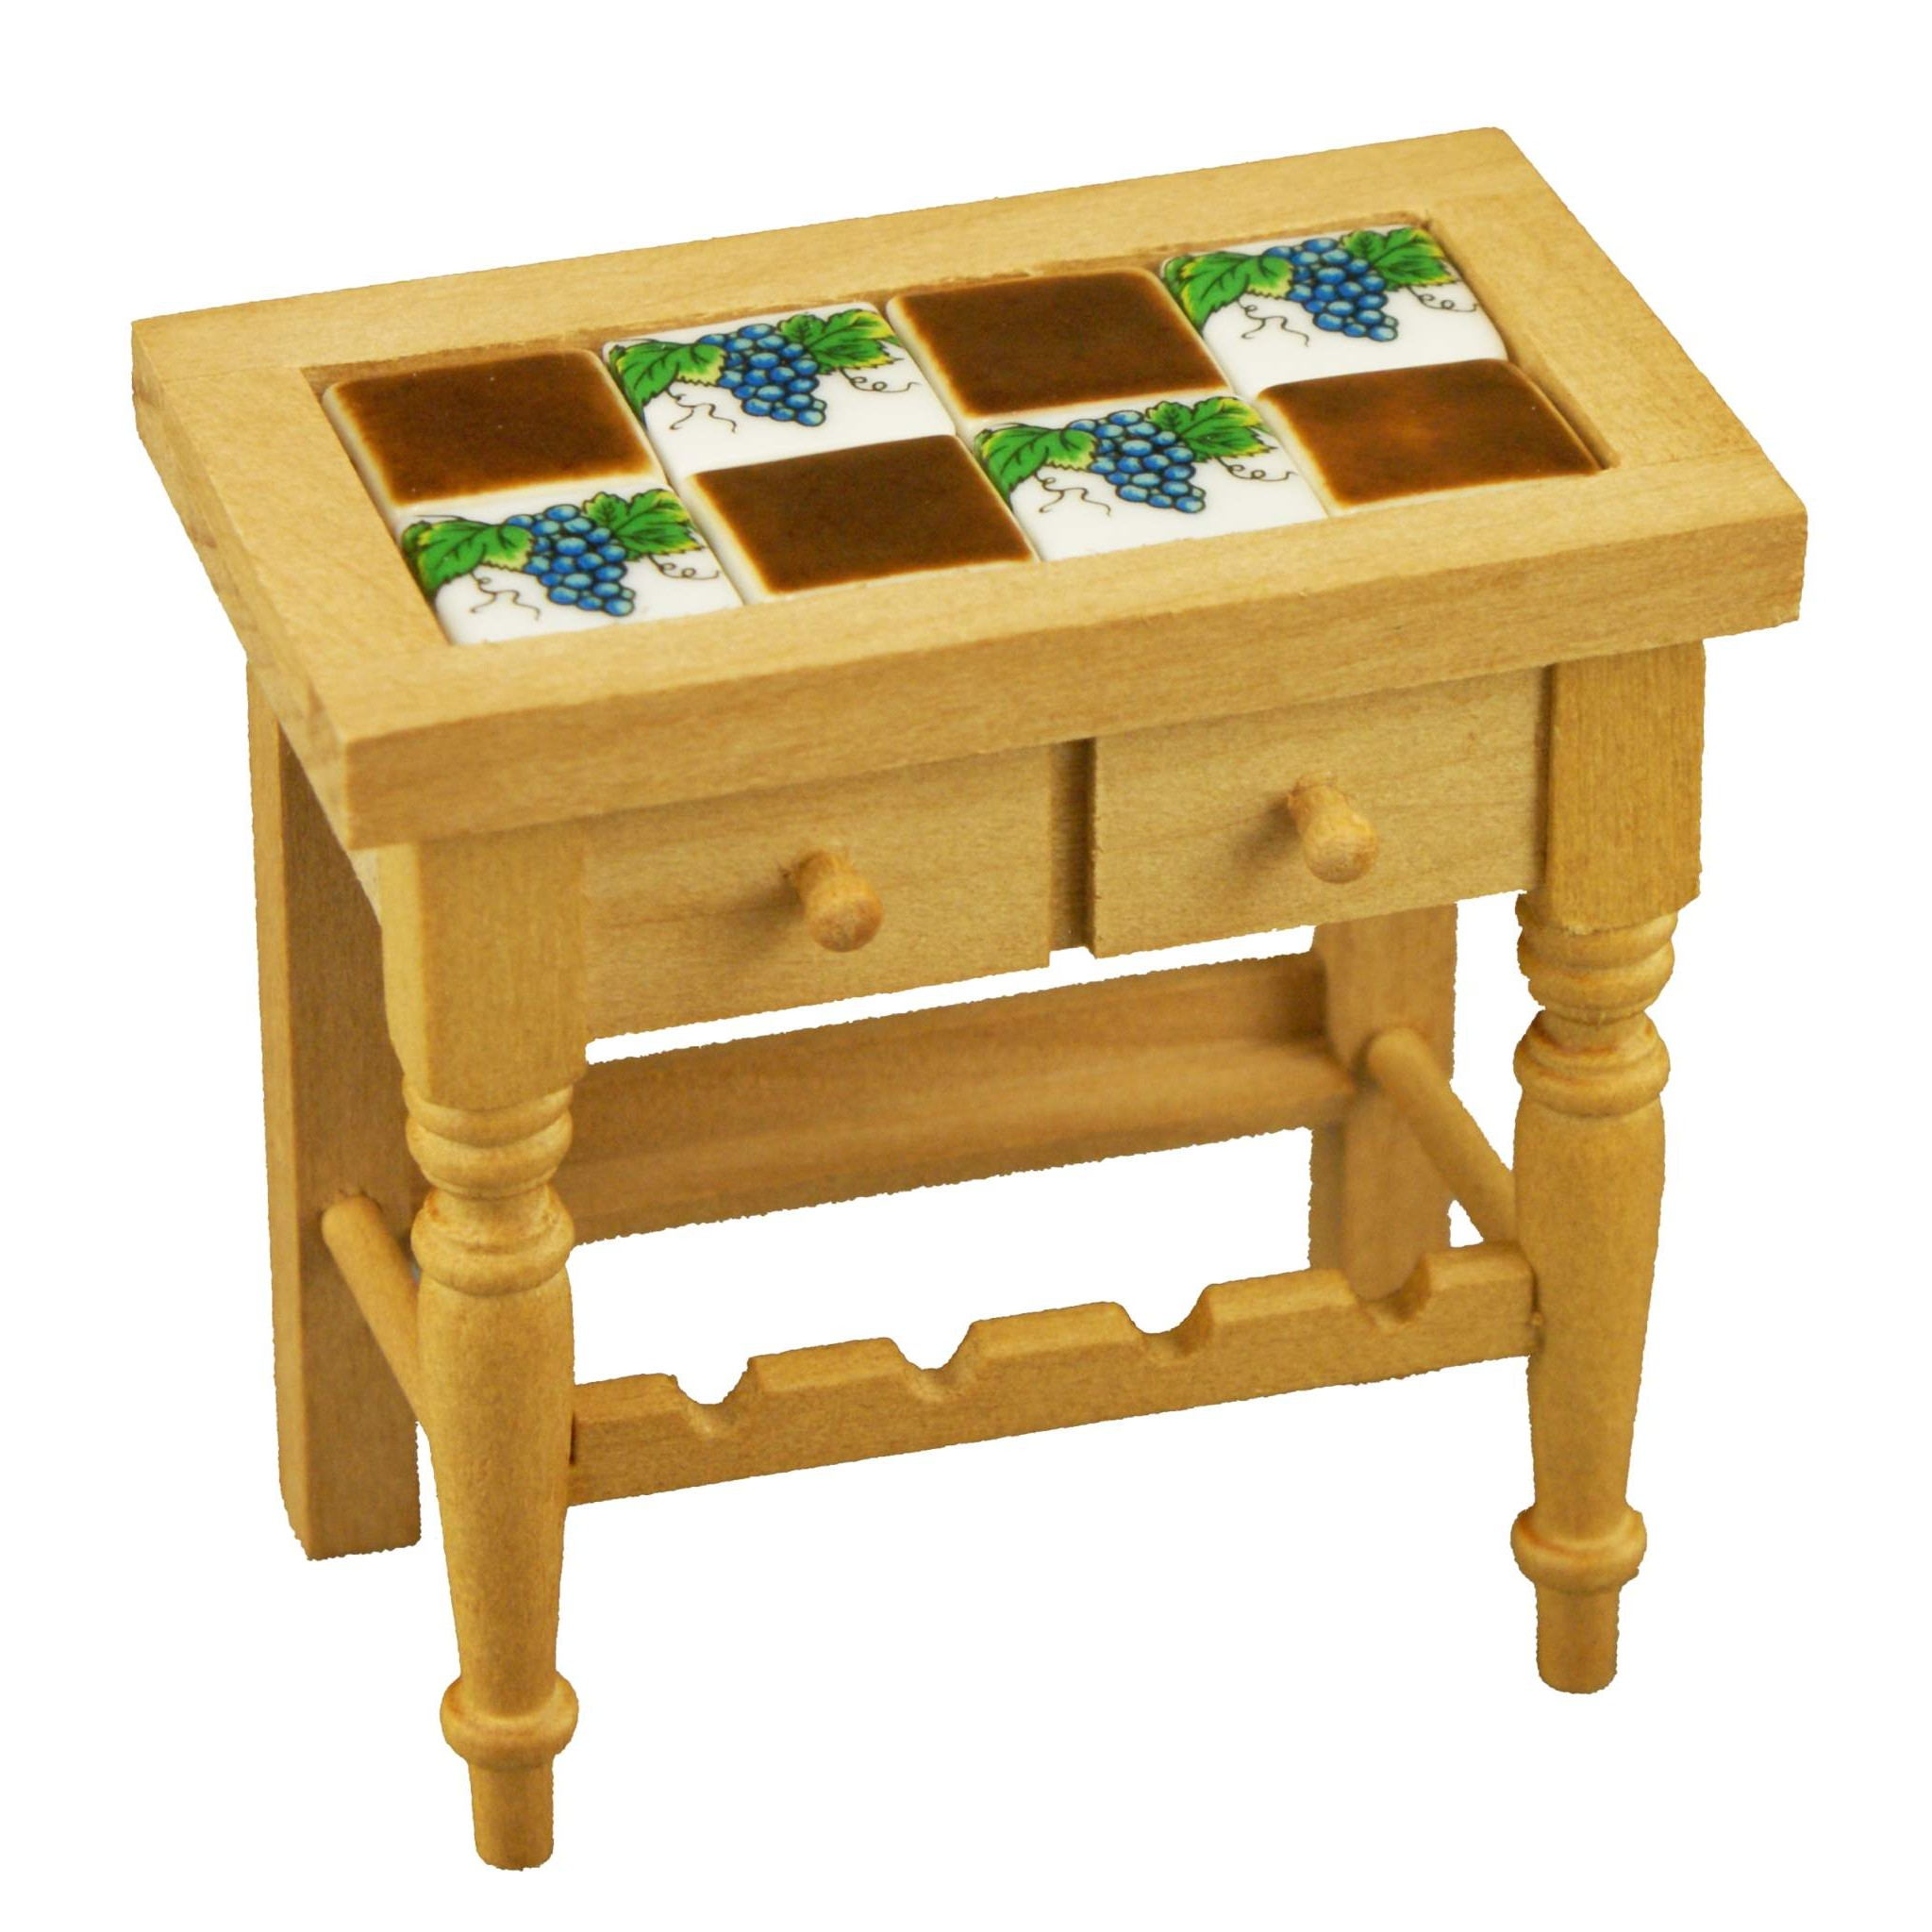 Reutters Kitchen Wine Table With Tiles